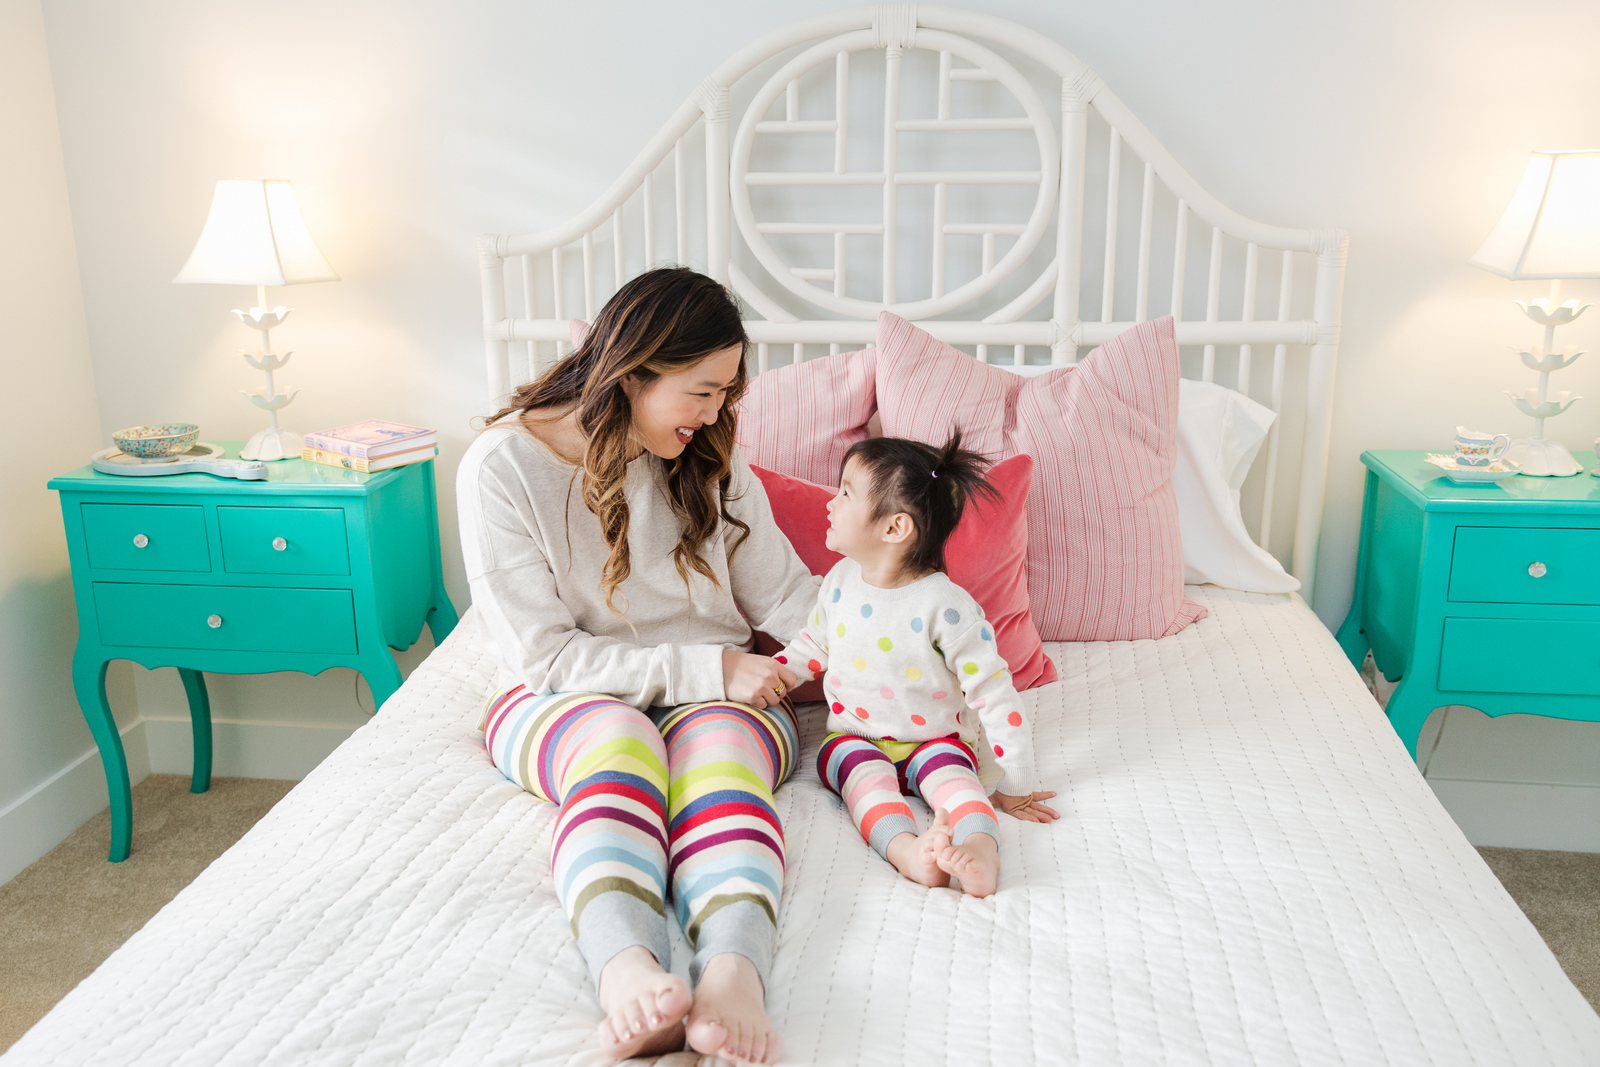 GAP sweater leggings: Mommy and Me loungewear